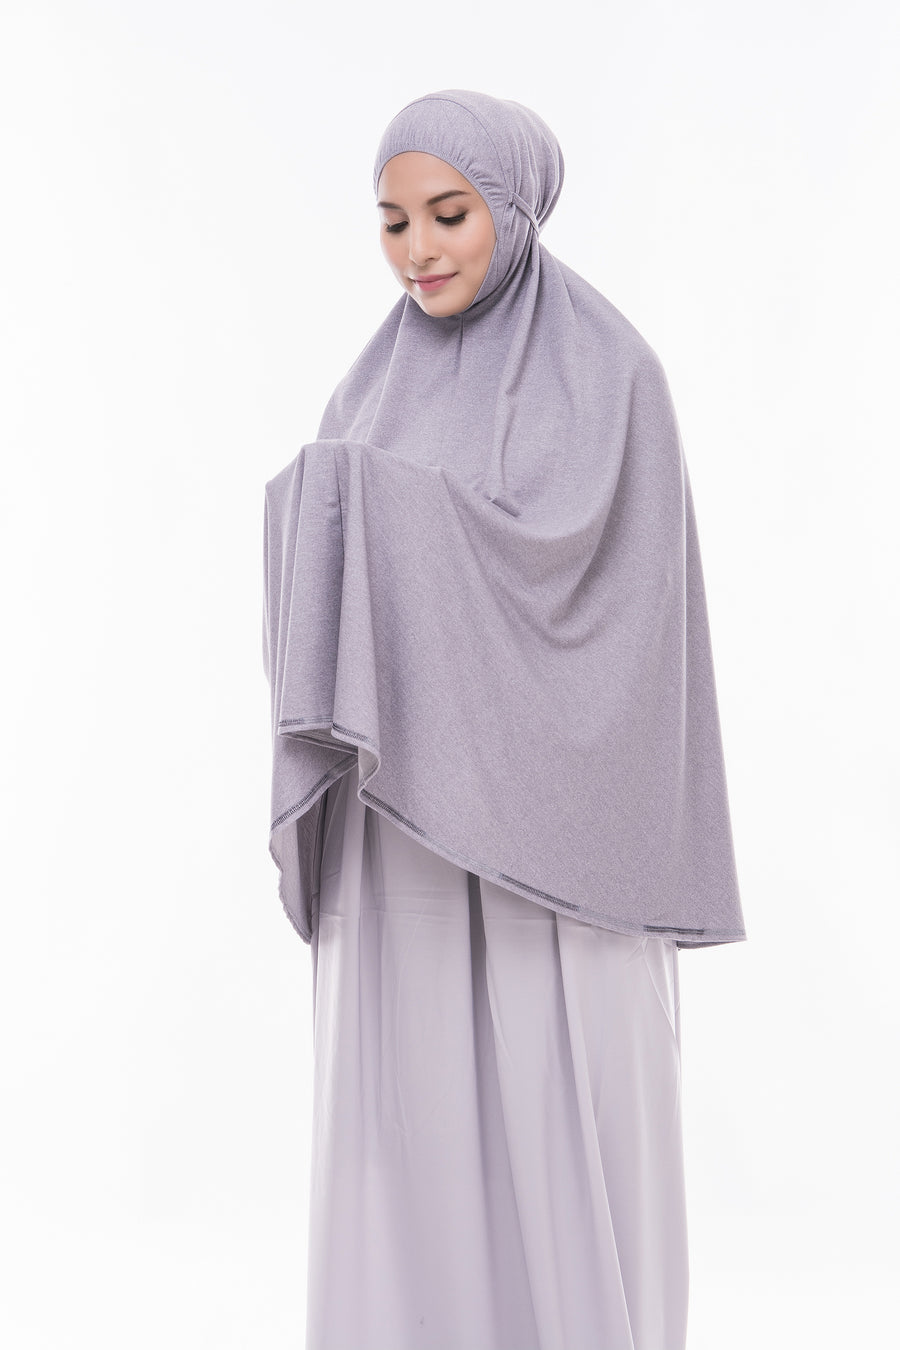 Telekung Mini Denim - Light Grey (without sleeve)